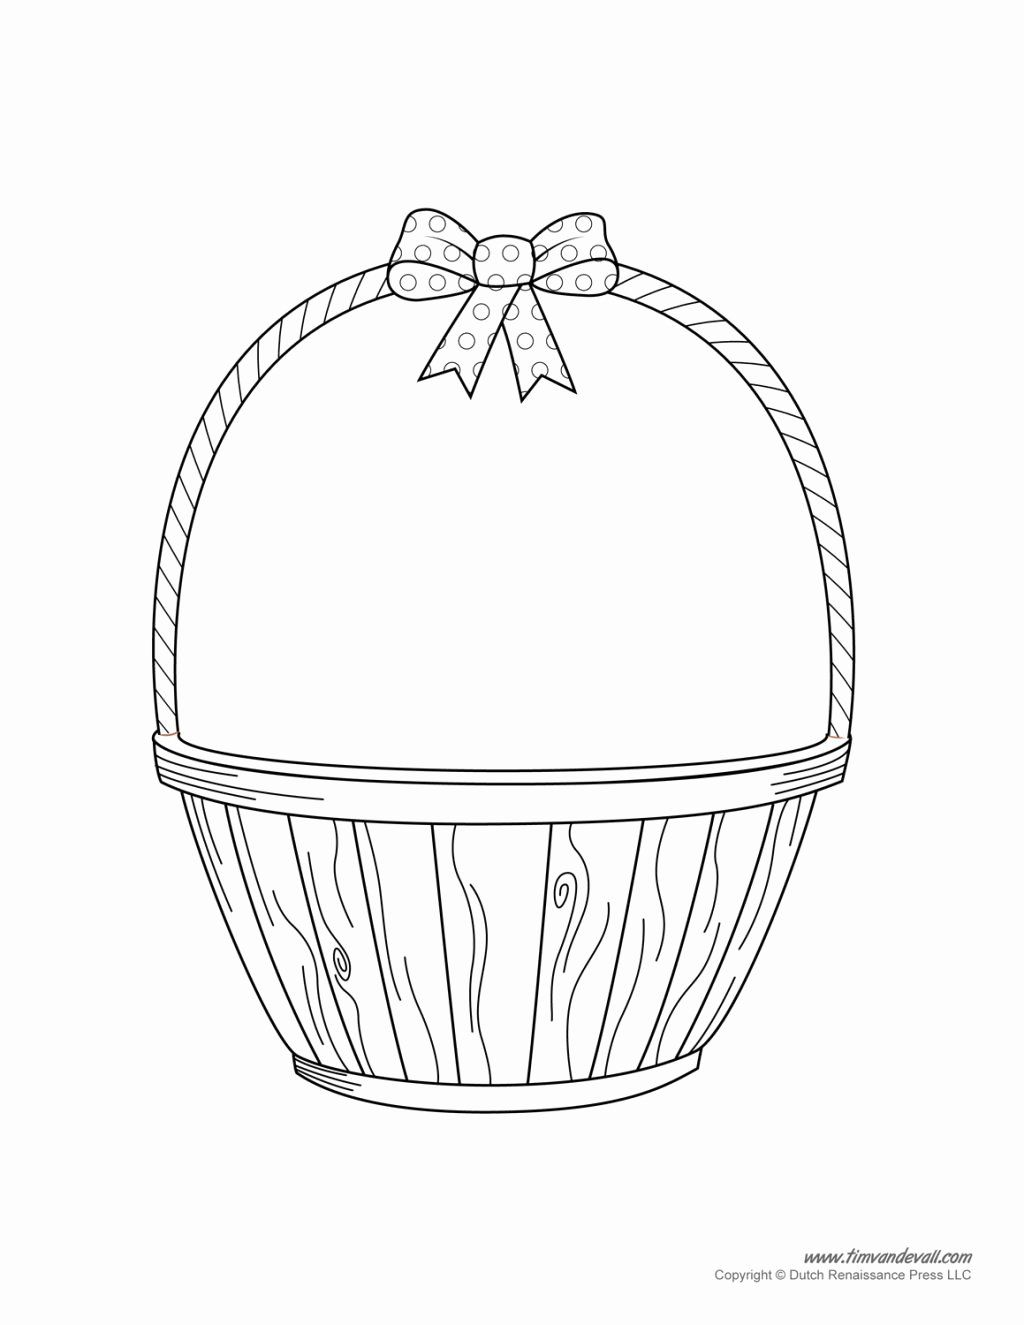 Empty Easter Basket Coloring Page Awesome Coloring Page 38 Outstanding Empty Coloring Pages Easter Basket Printable Empty Easter Baskets Easter Baskets